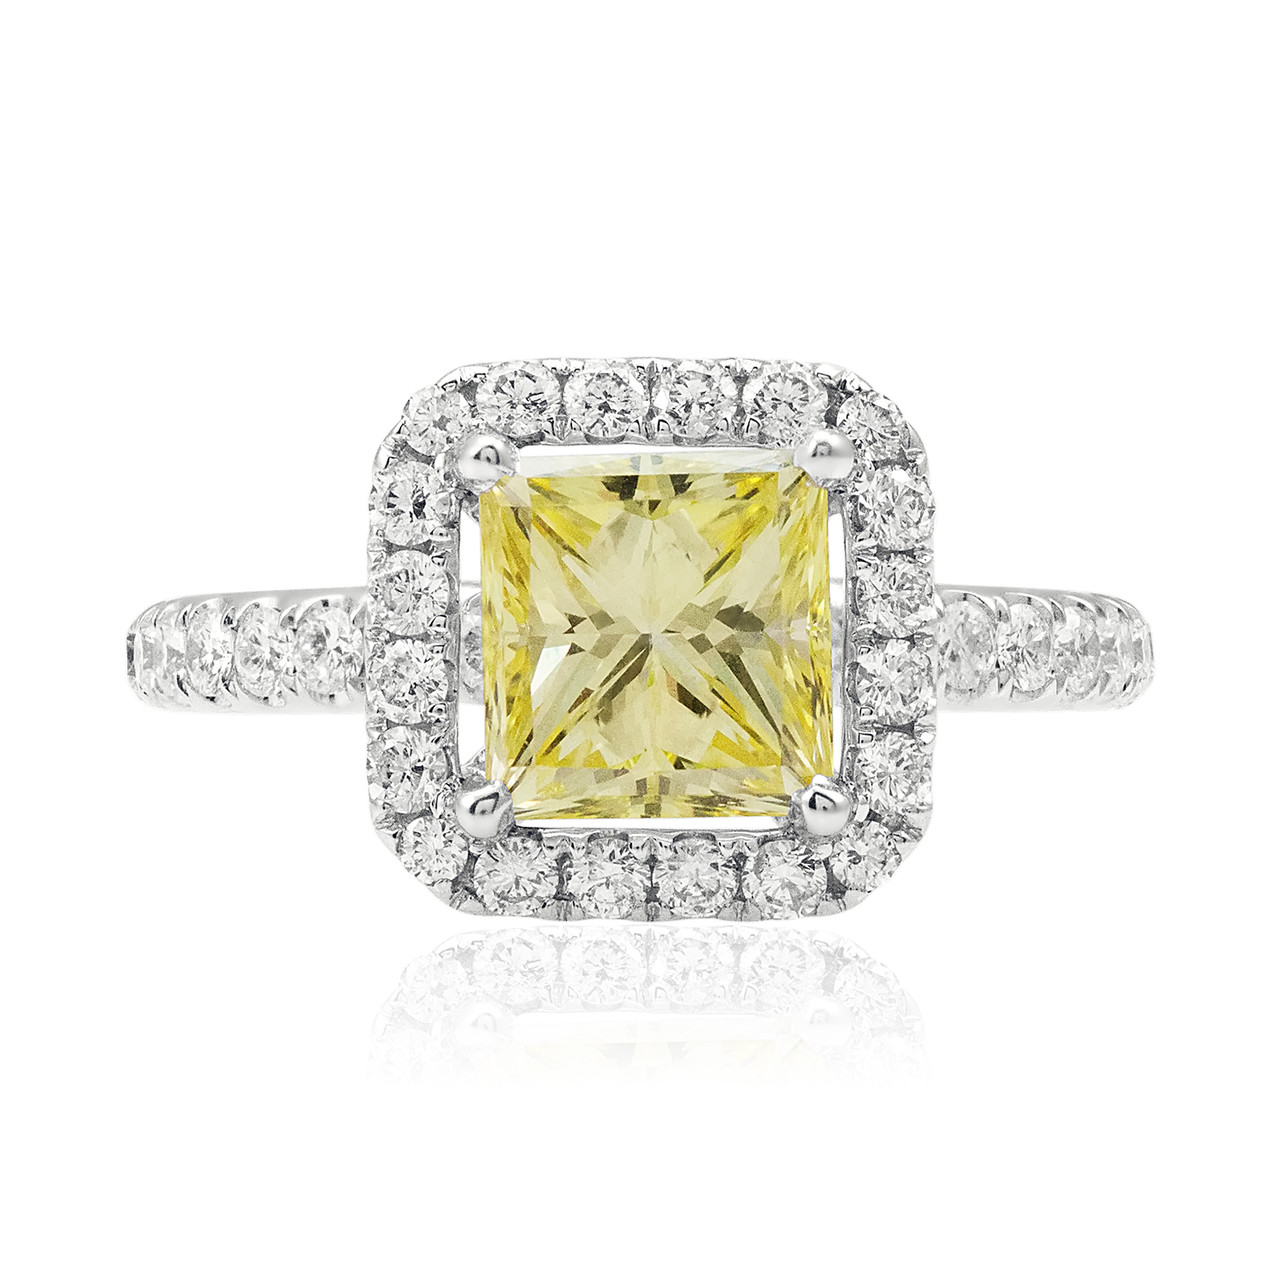 5a700fe3c5 18k White Gold 3.06ct Canary Yellow Princess Cut Diamond Ring - Shyne  Jewelers